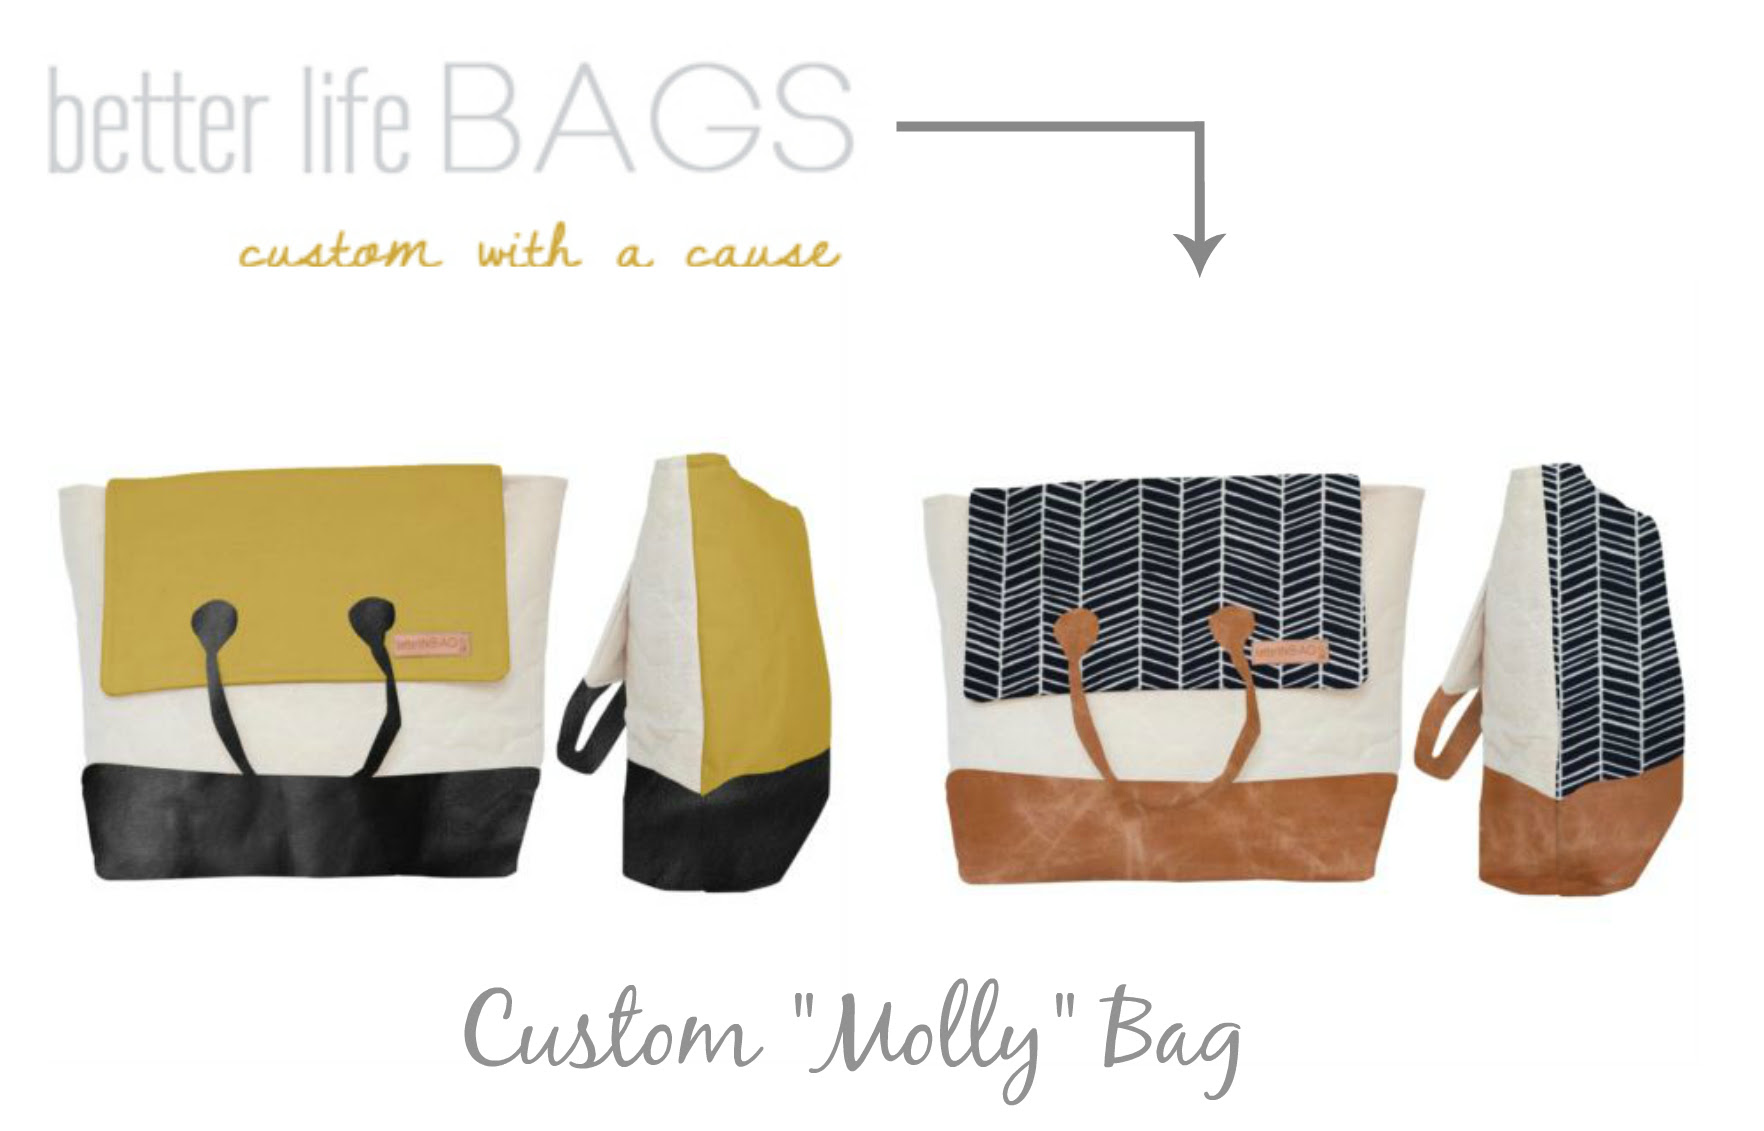 better life bags custom bag